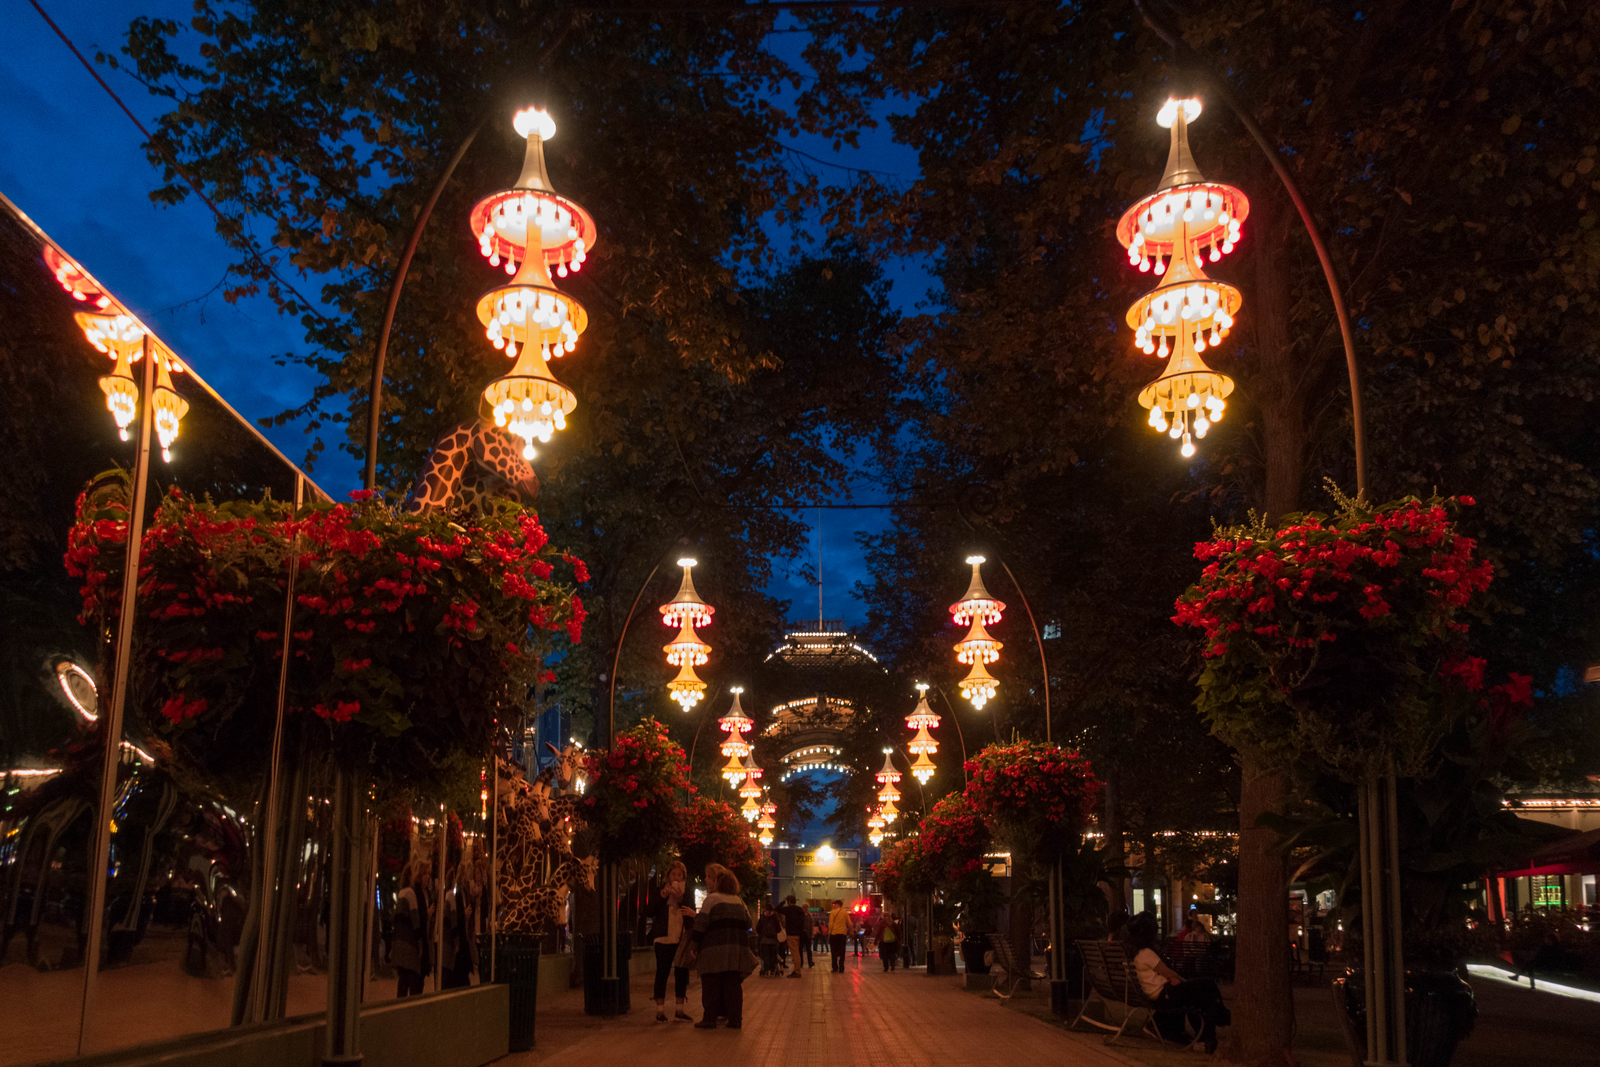 The Entrance to Tivoli Gardens in Copenhagen